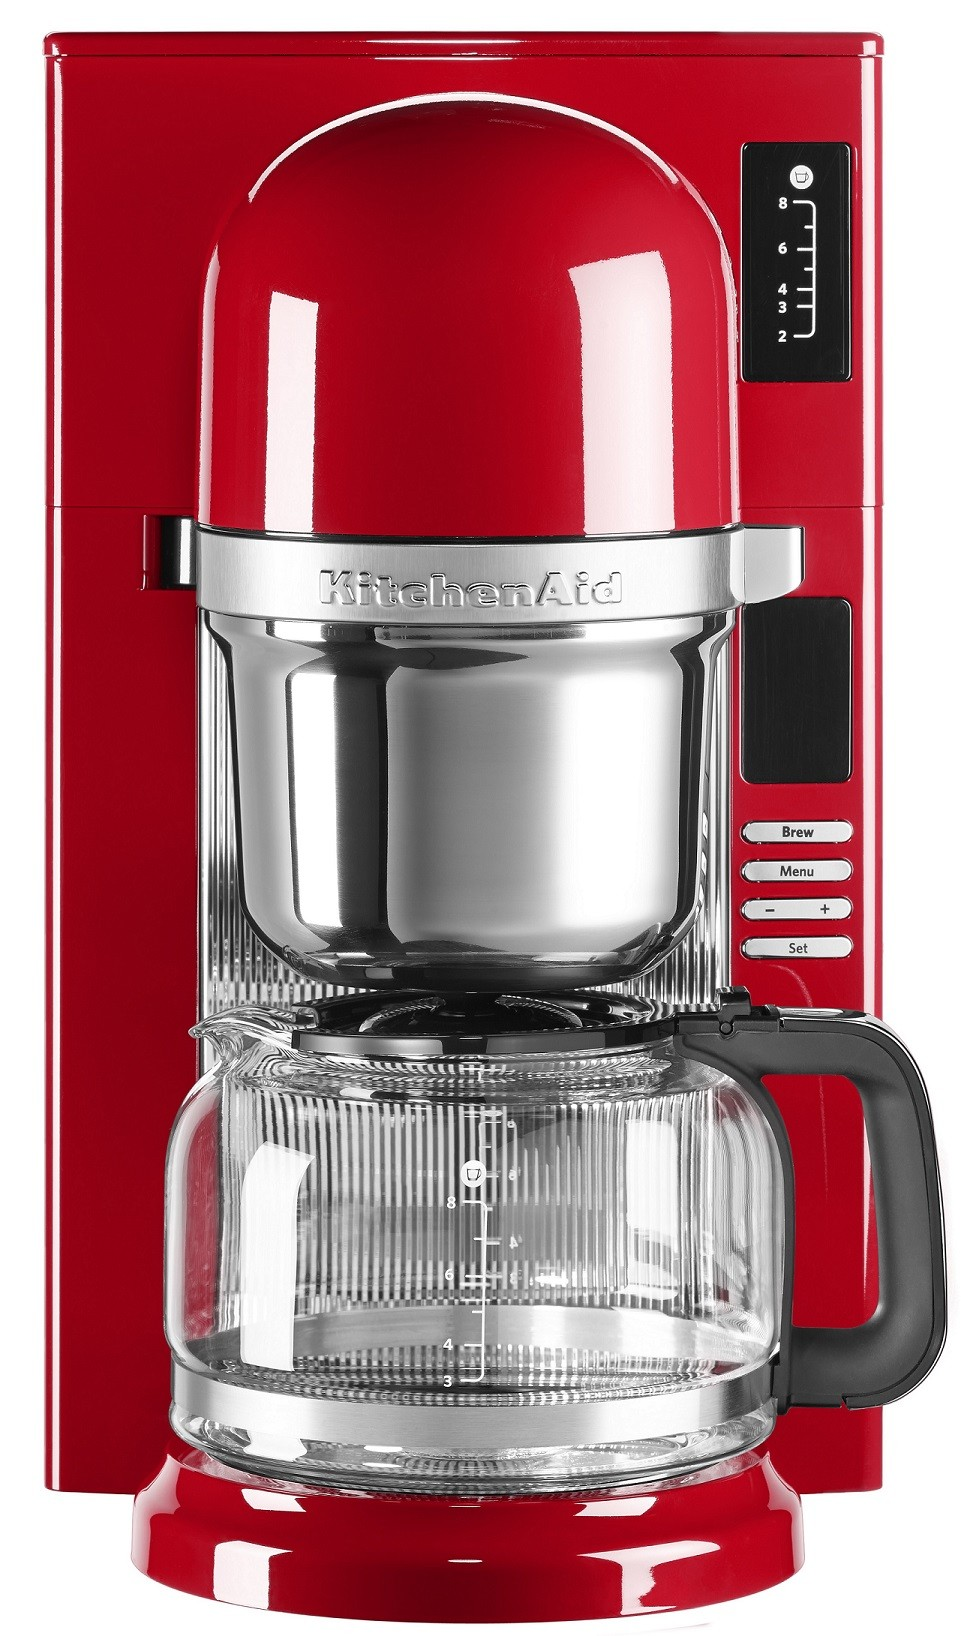 KITCHENAID - 5 KCM 0802 EER